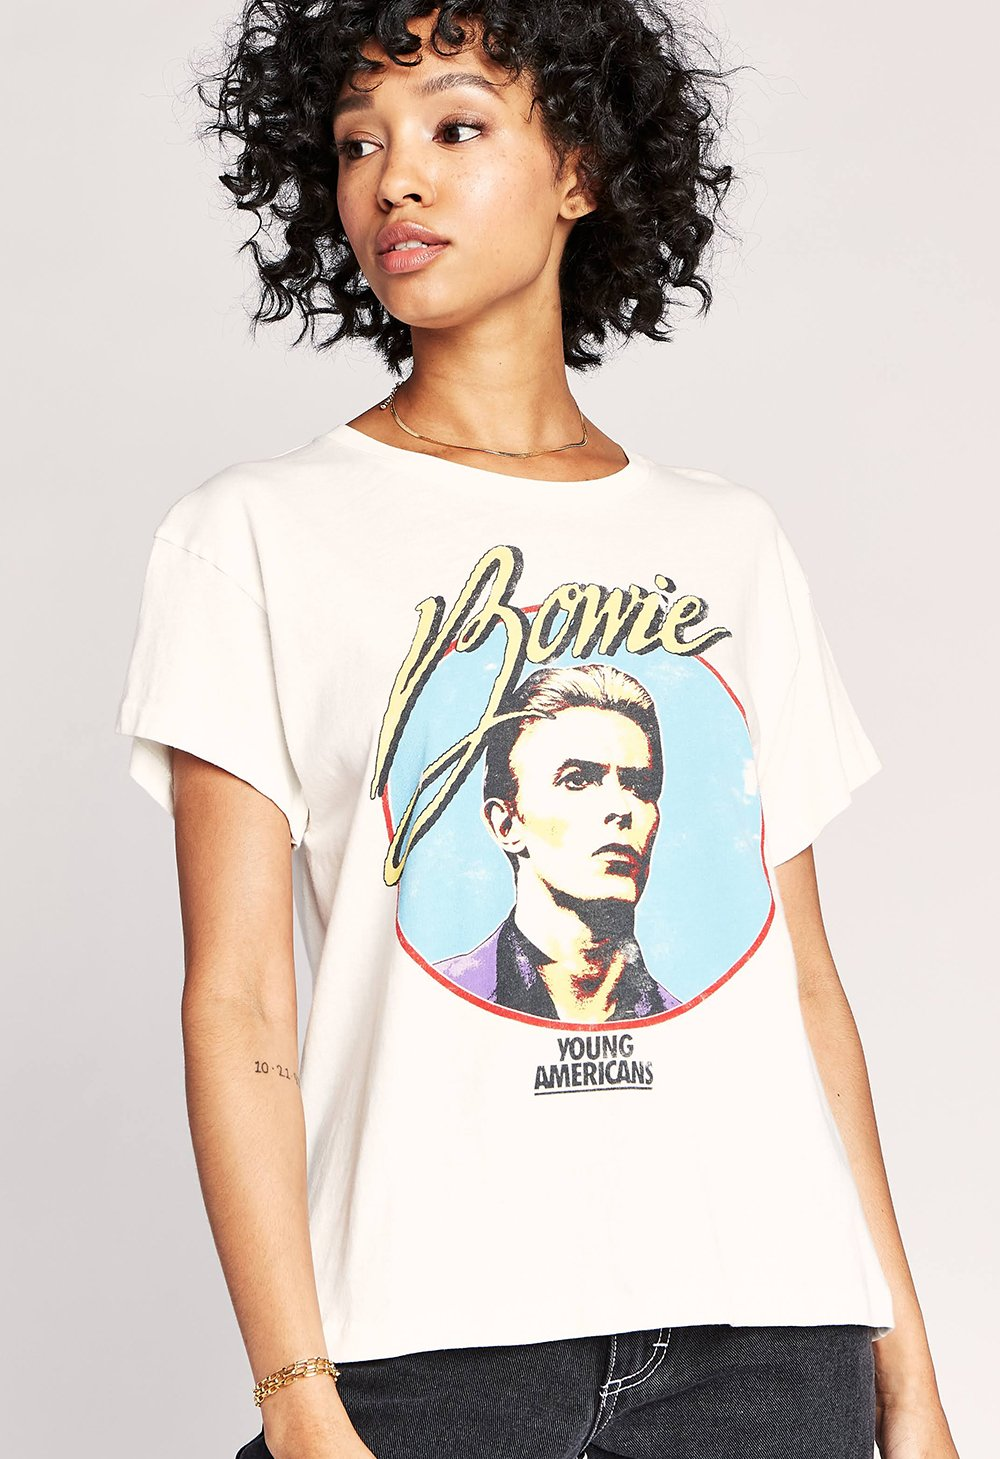 Bowie Young Americans Tour Tee - The Canyon